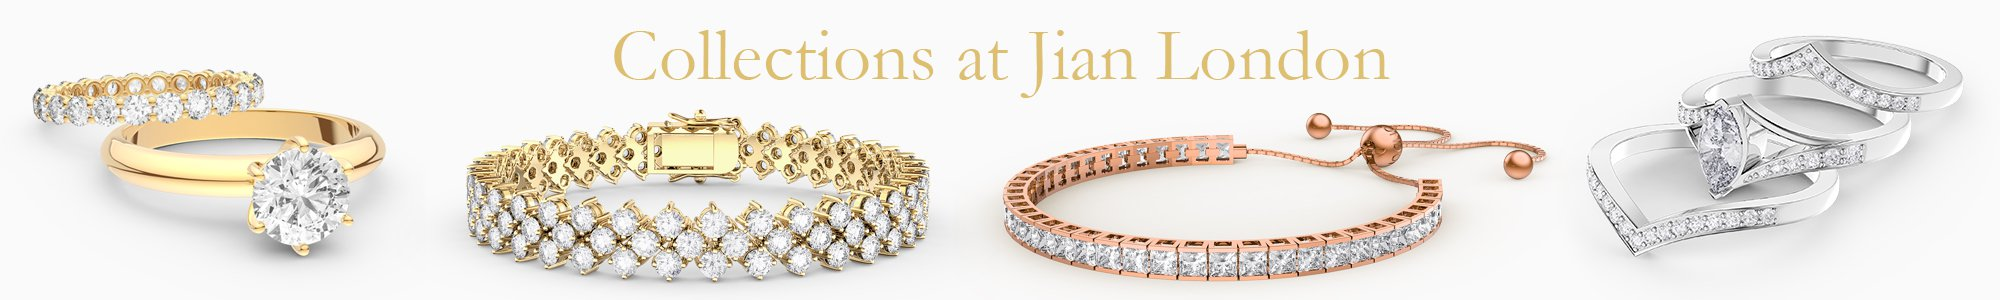 Jewellery for everyone - from precious gemstones to Diamonds. From Silver to 18ct Gold.